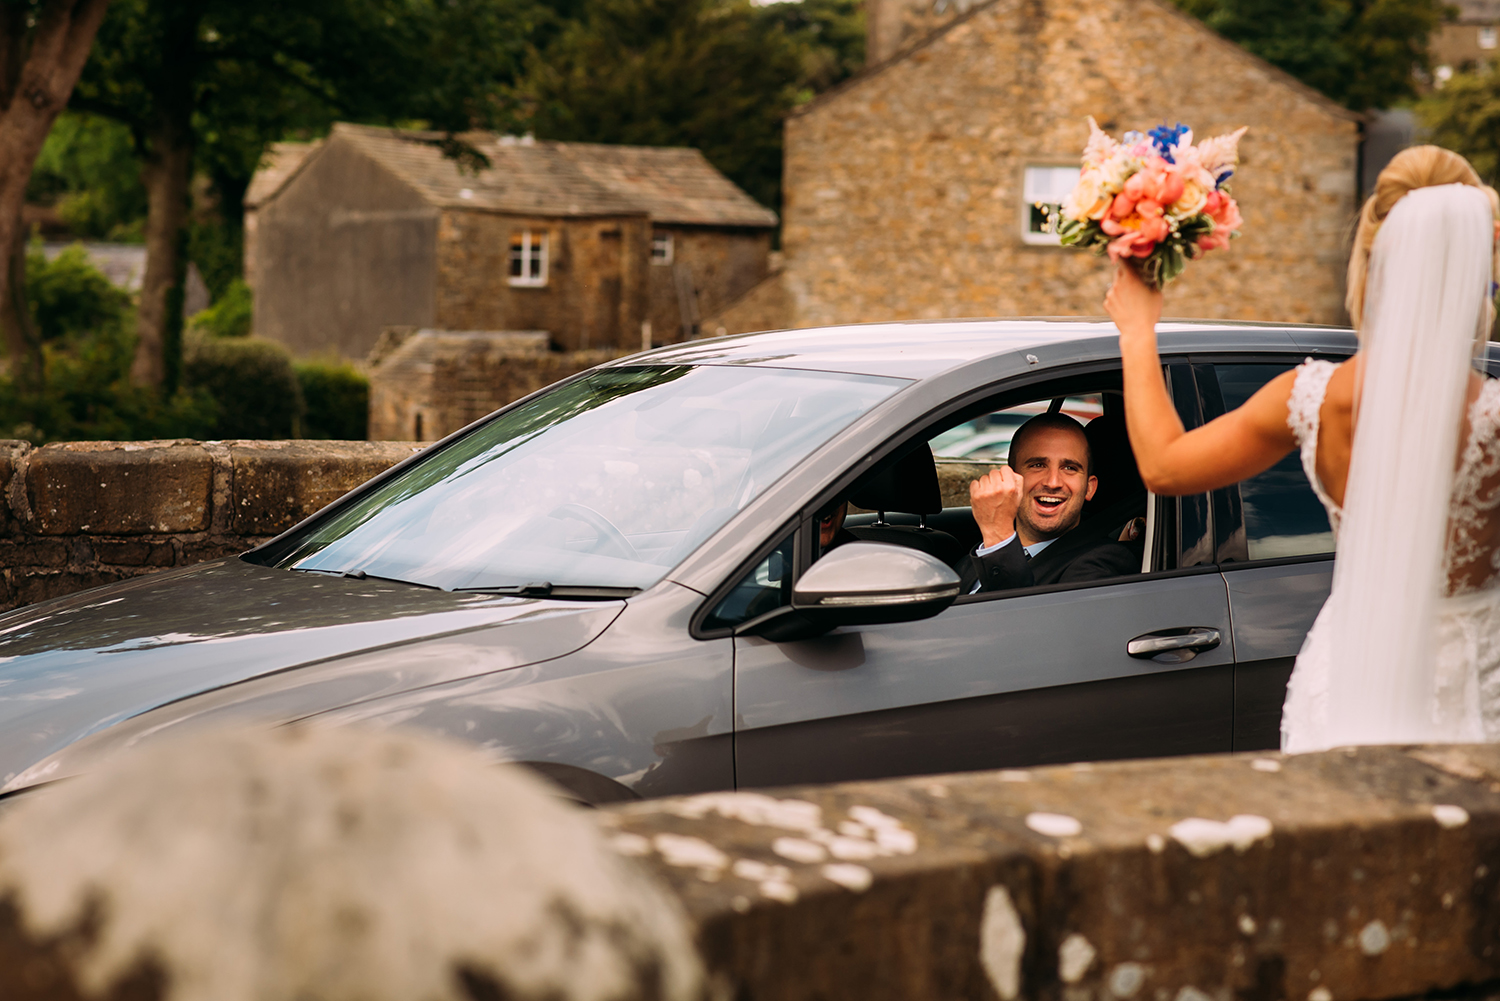 A passer by in the car beeps and cheers the couple